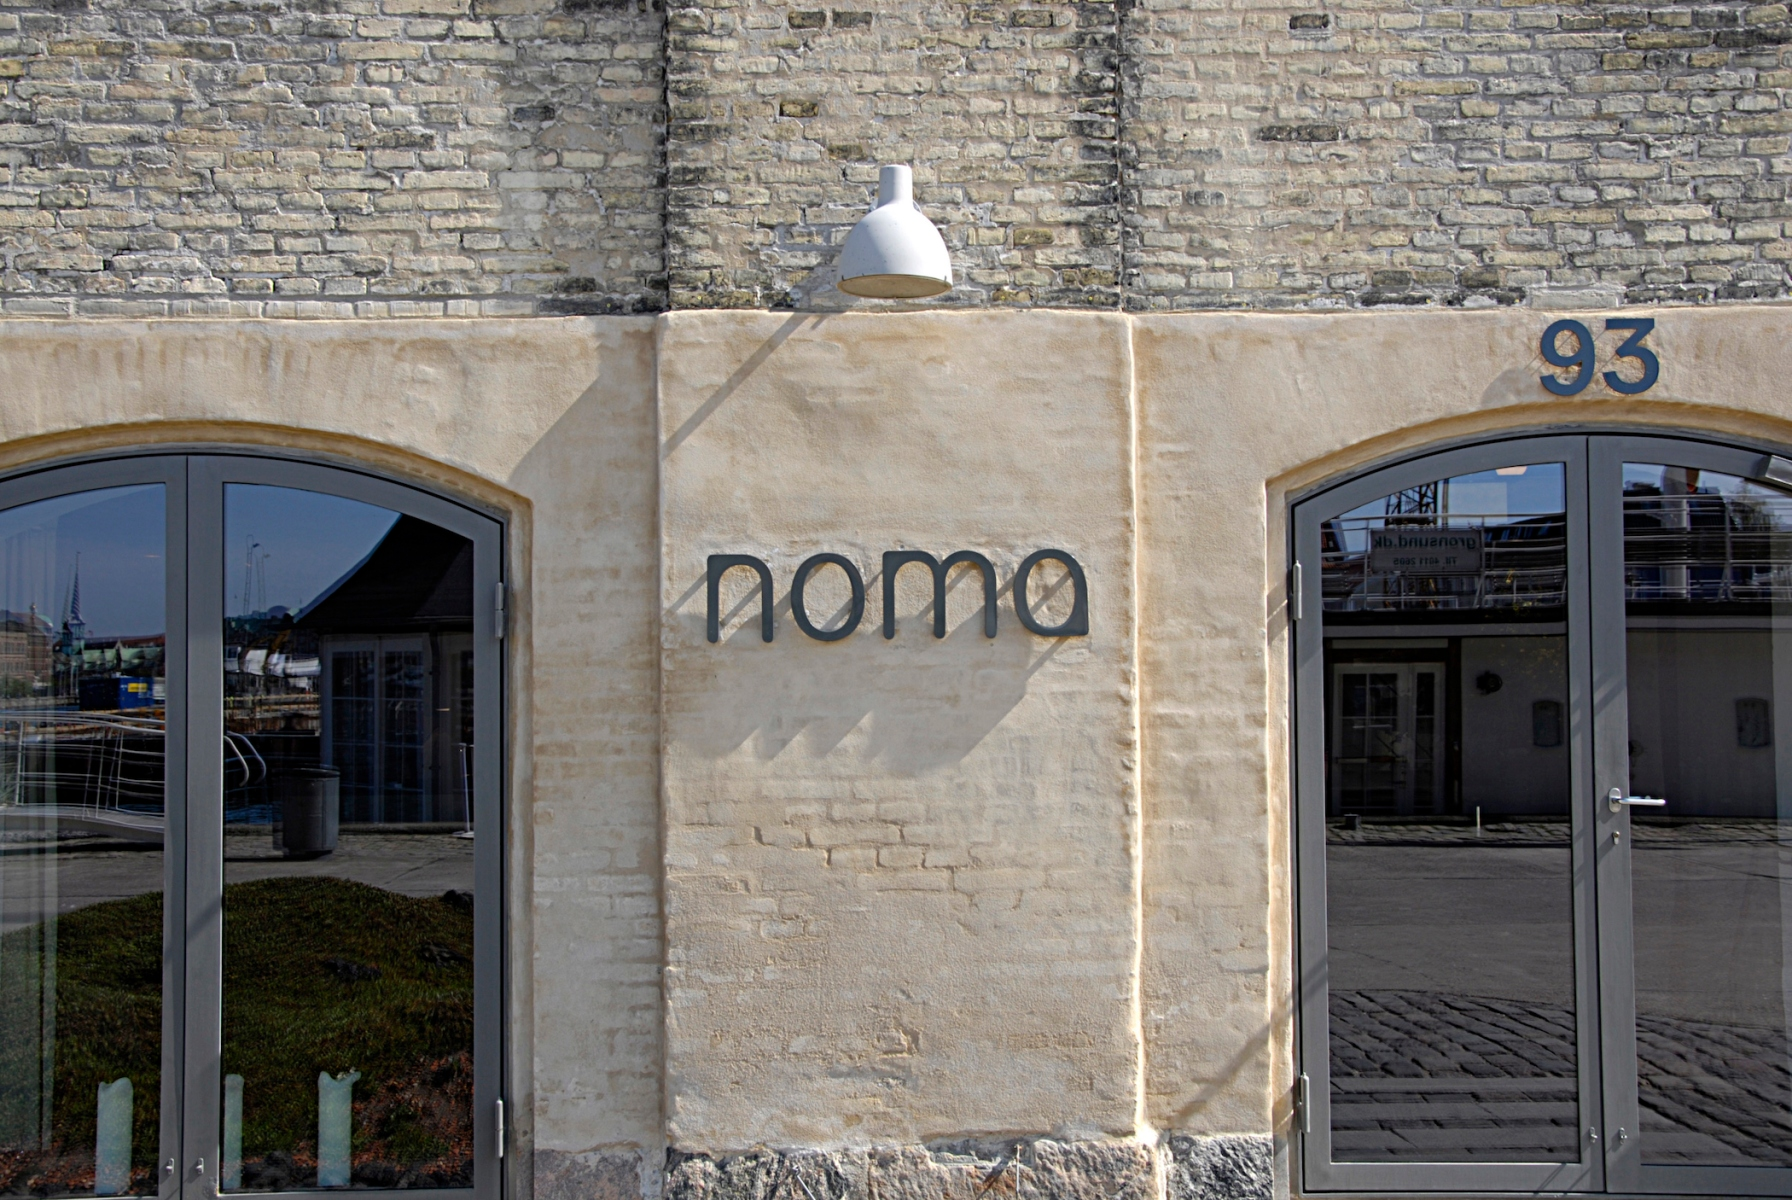 British restaurant magazine name Noma restaurant Worldest best resataurant and people view the manu and srounding the Noma Restaurant in Copenhagen and best among 50 listen restaurants 29 April 2014 (Photo by Francis Dean/Deanpictures) (Photo by Francis Dean/Corbis via Getty Images)